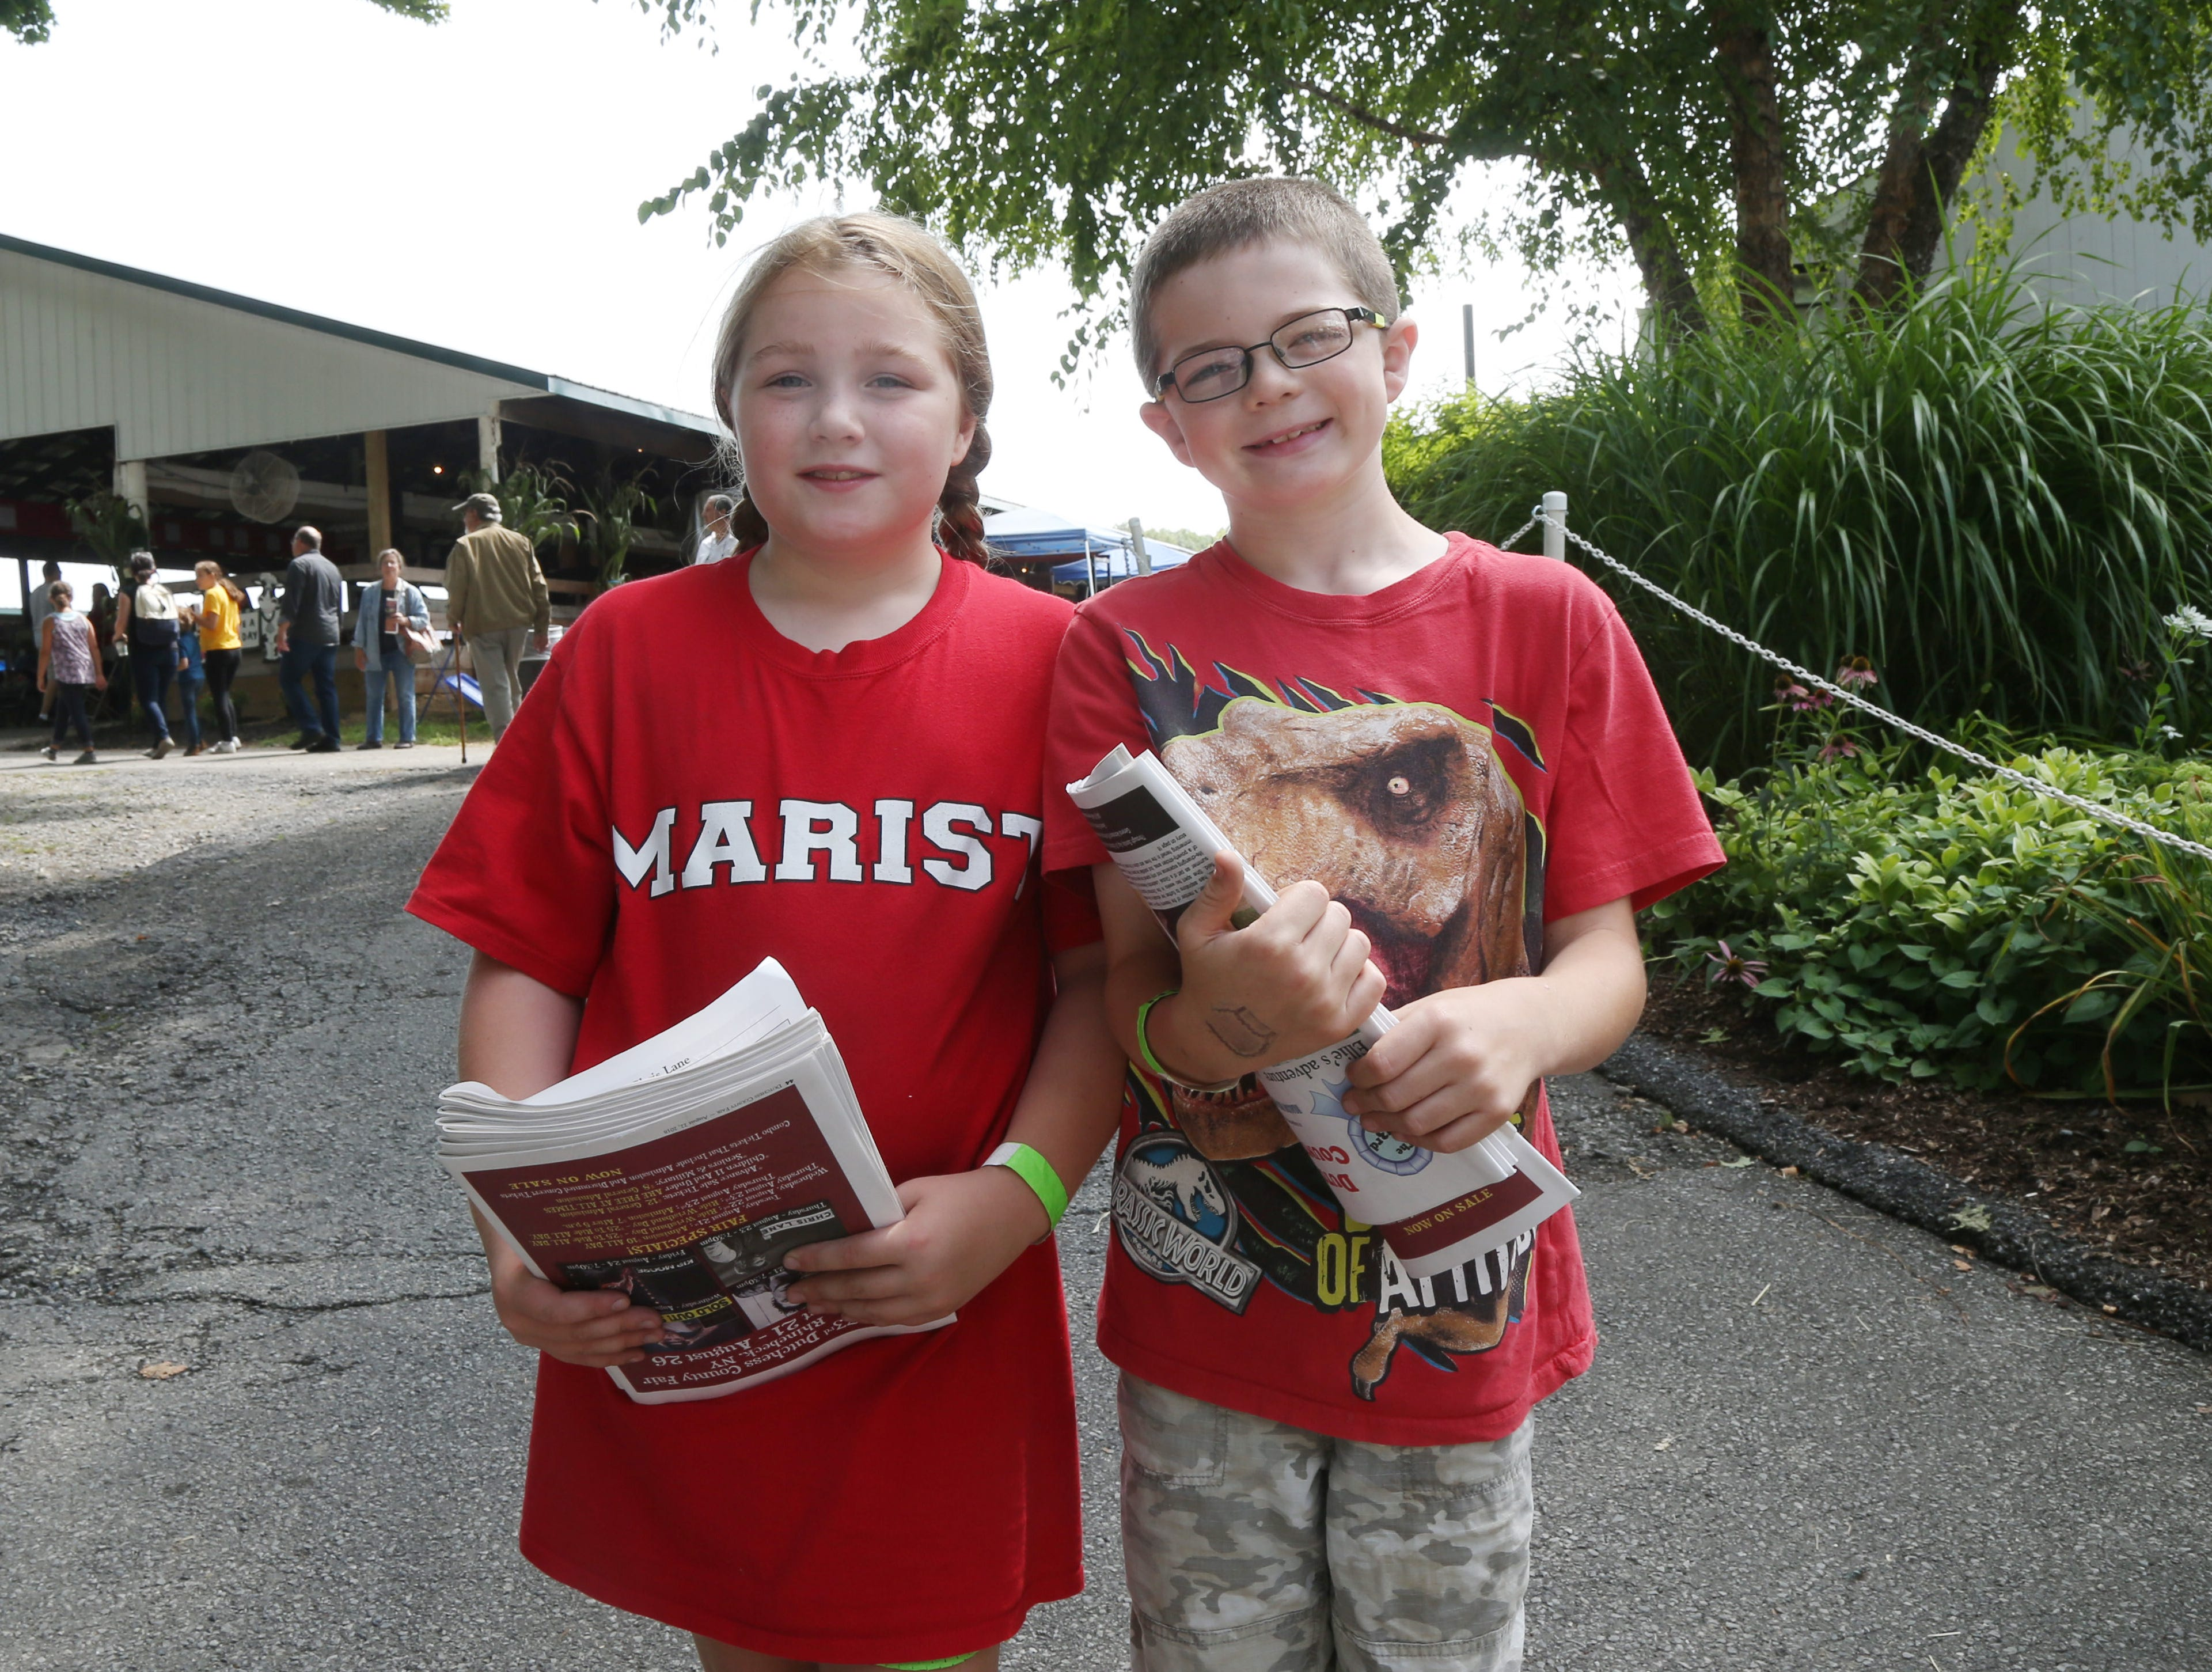 From left, Jenna  Lawrence of Wappingers Falls and Kogan Lawrence of Amenia hand out newsletters at the Dutchess County Fair in Rhinebeck on August 21 2018.